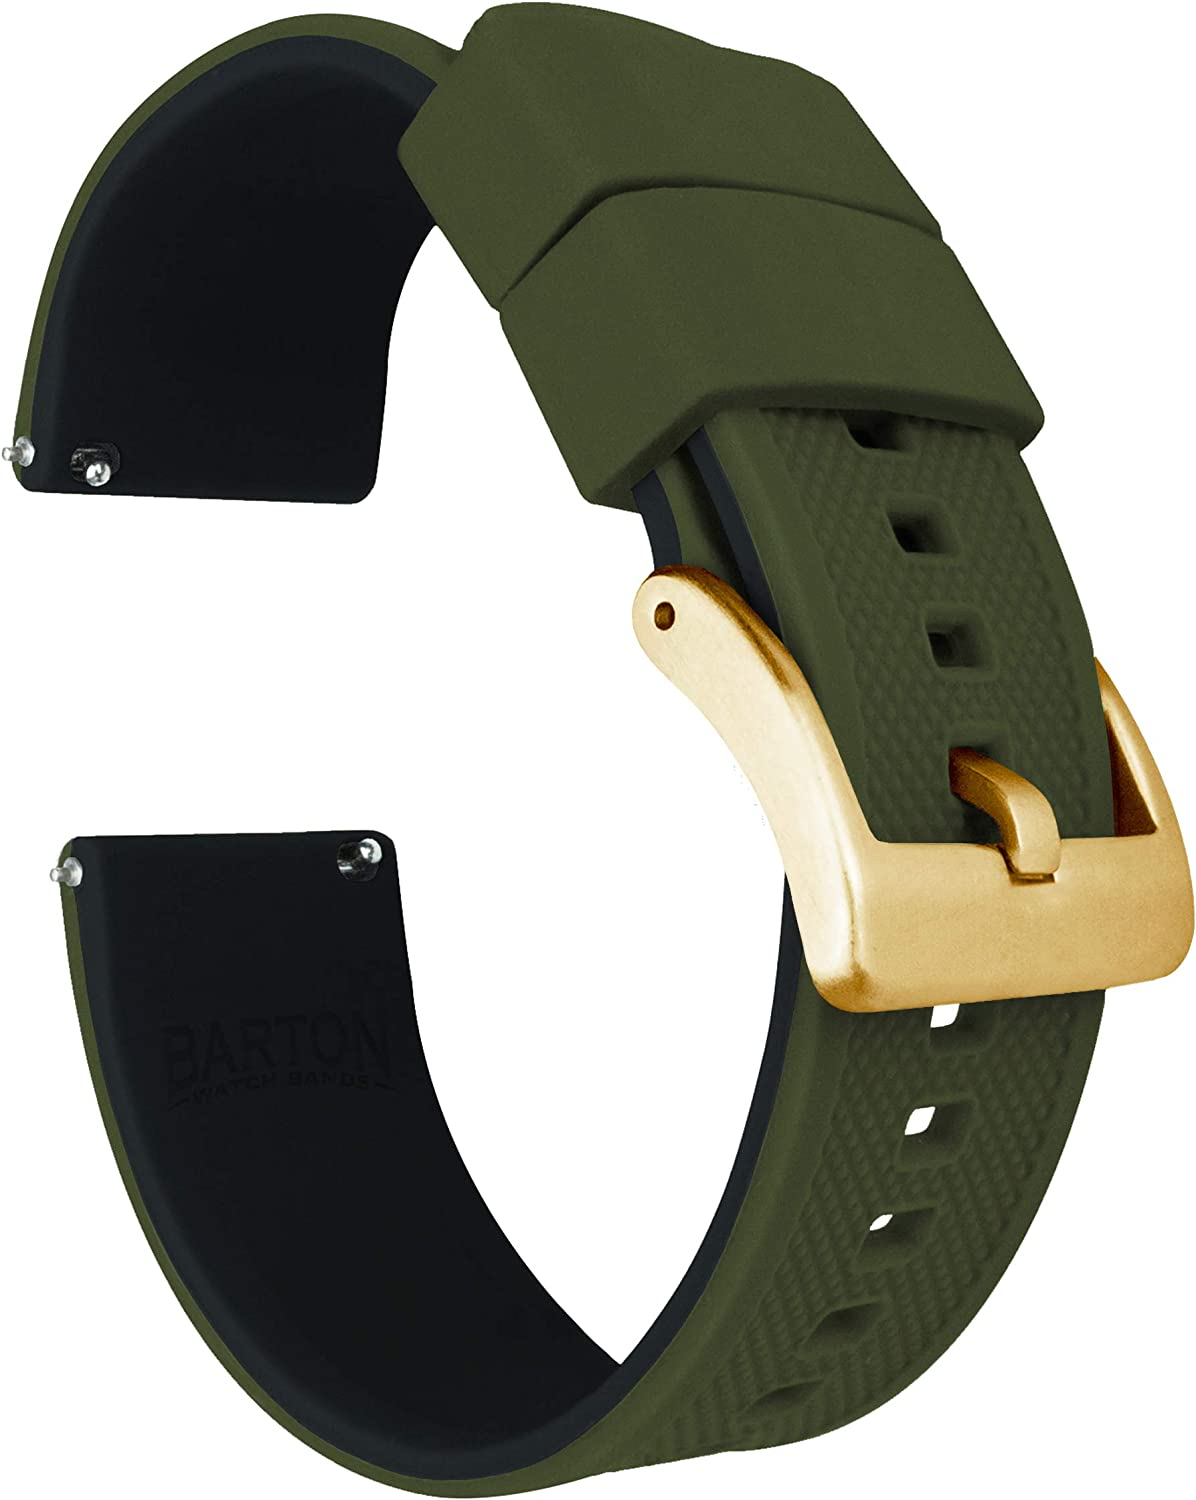 Barton Elite Silicone Watch Bands - Gold Buckle Quick Release - Choose Color - 18mm, 19mm, 20mm, 21mm, 22mm, 23mm & 24mm Watch Straps